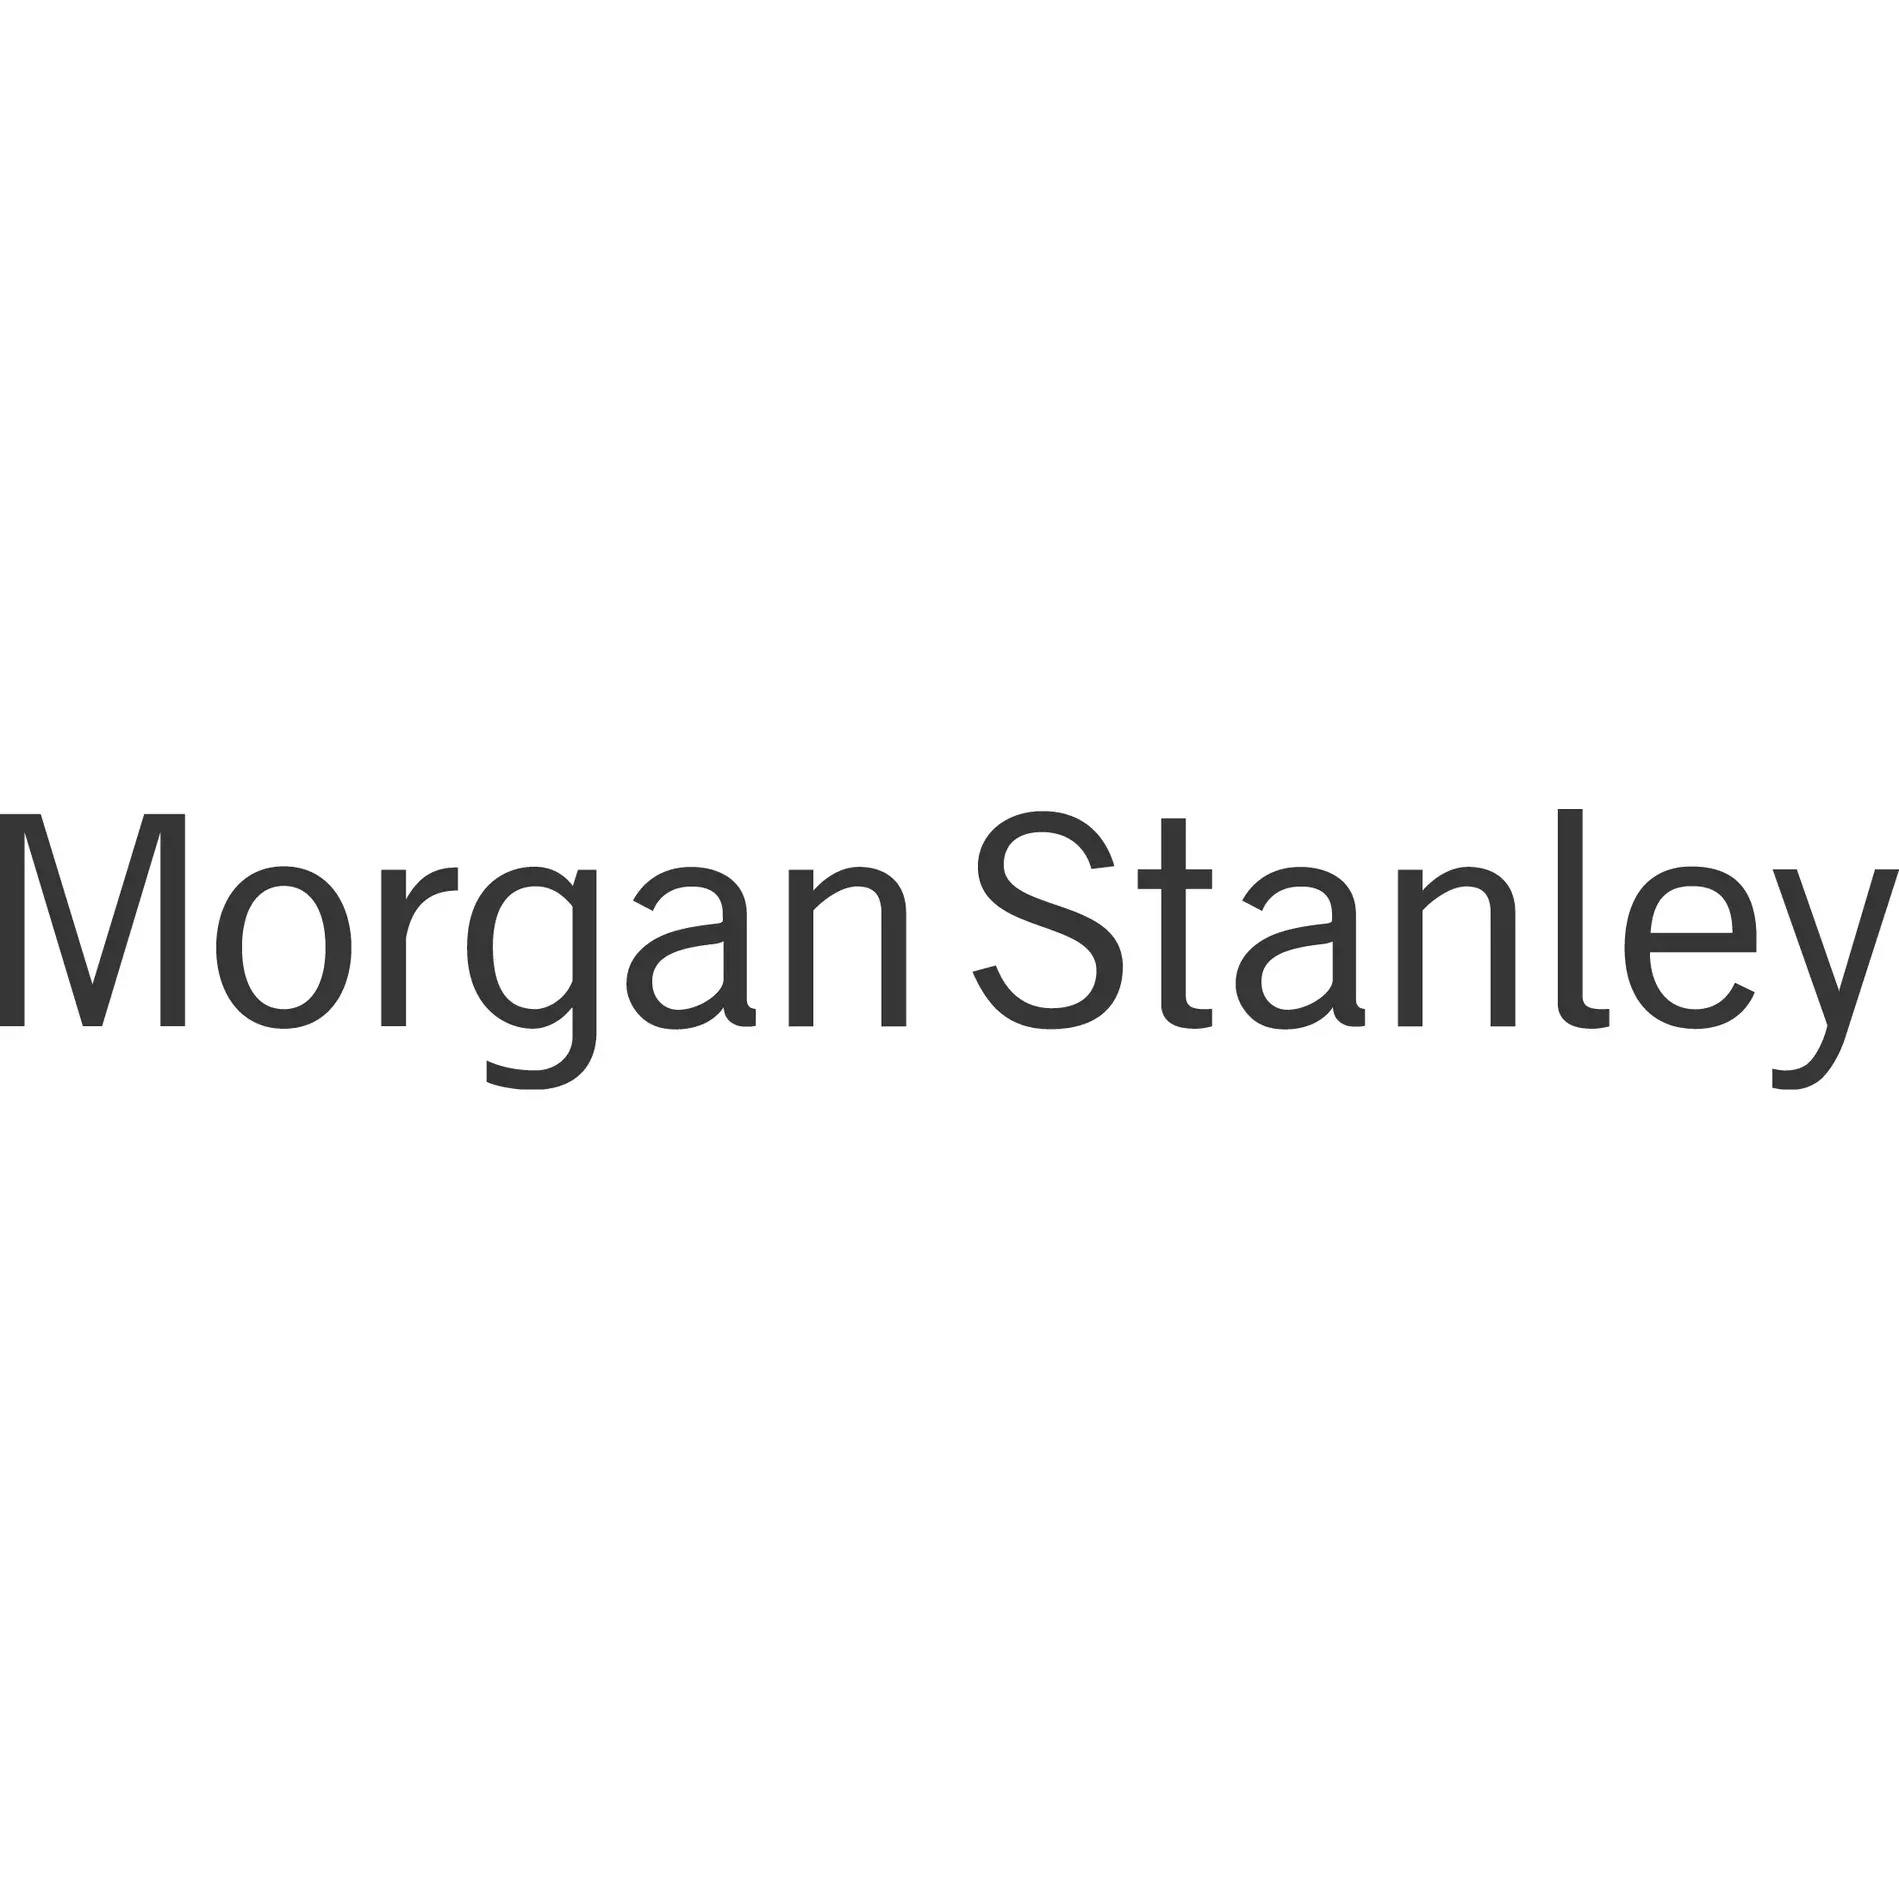 Patteson Wealth Management Group - Morgan Stanley